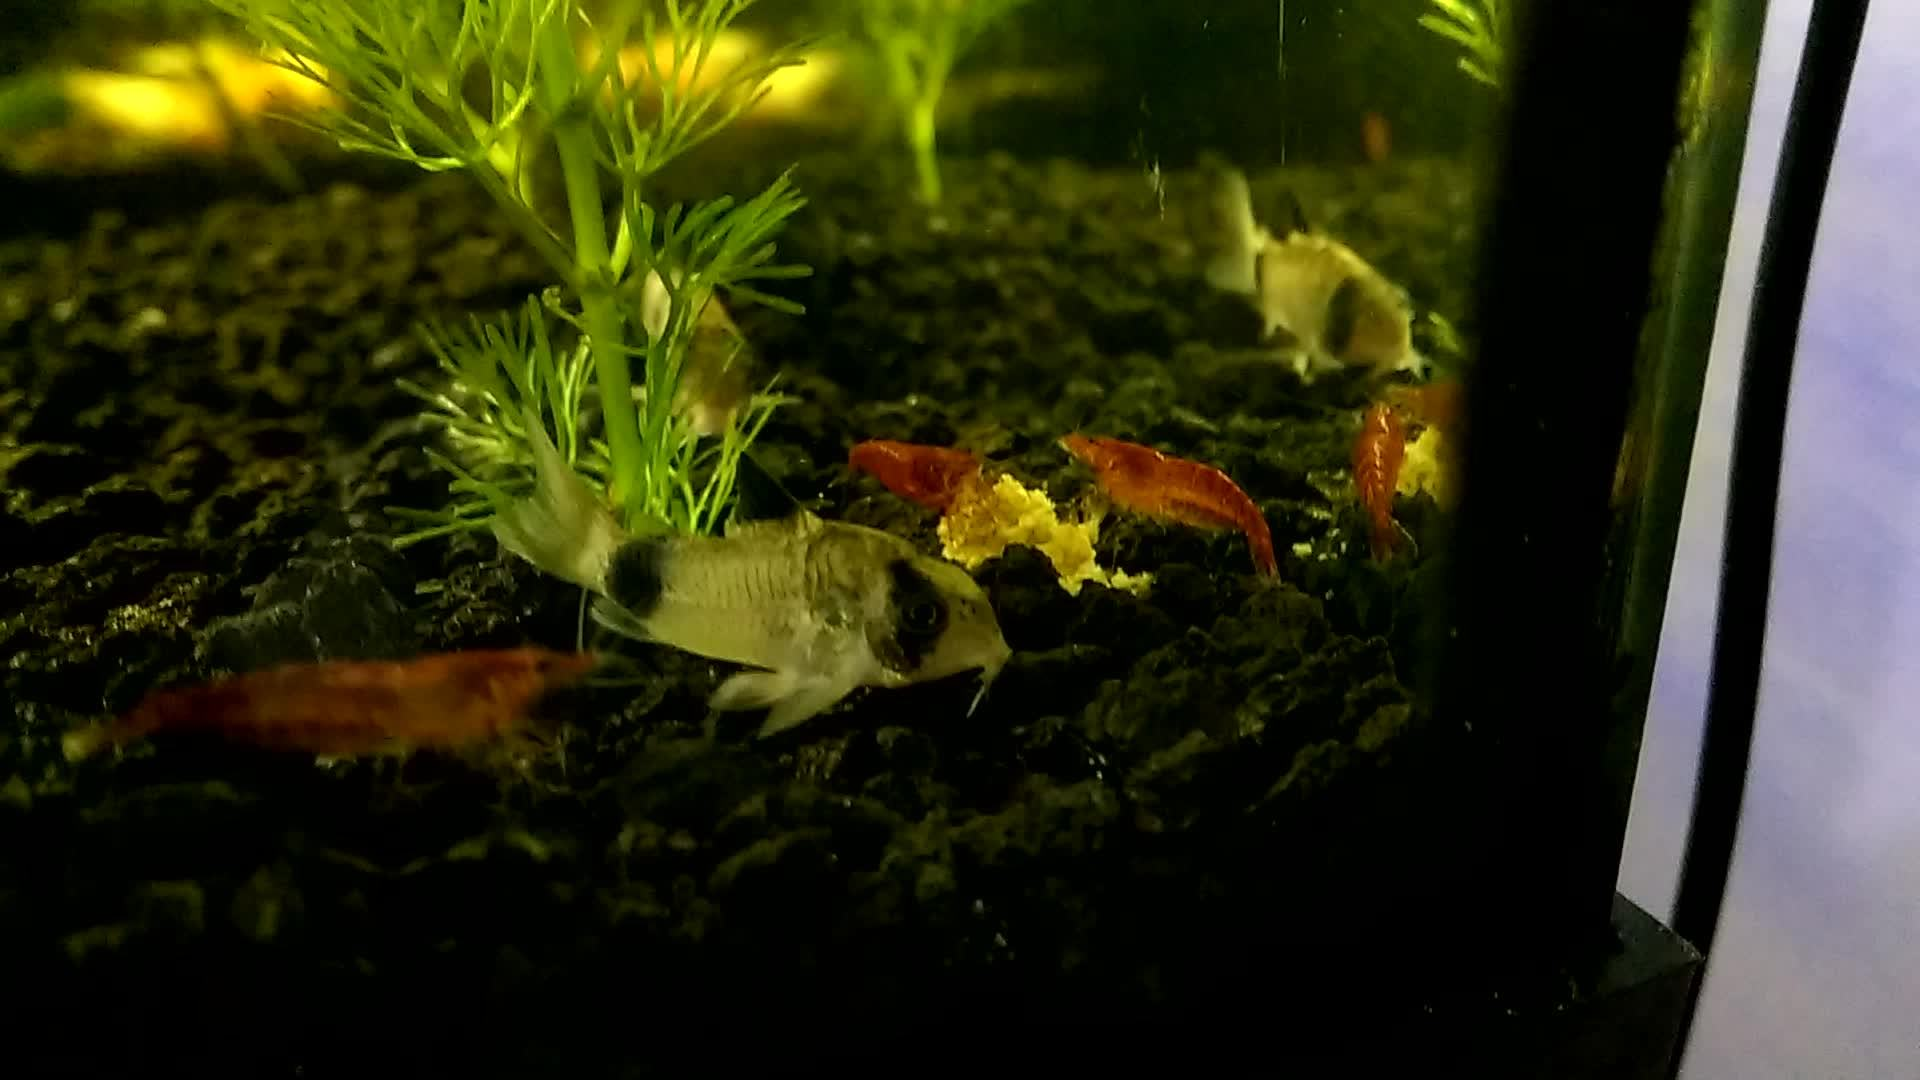 shrimptank, Dinner is served GIFs